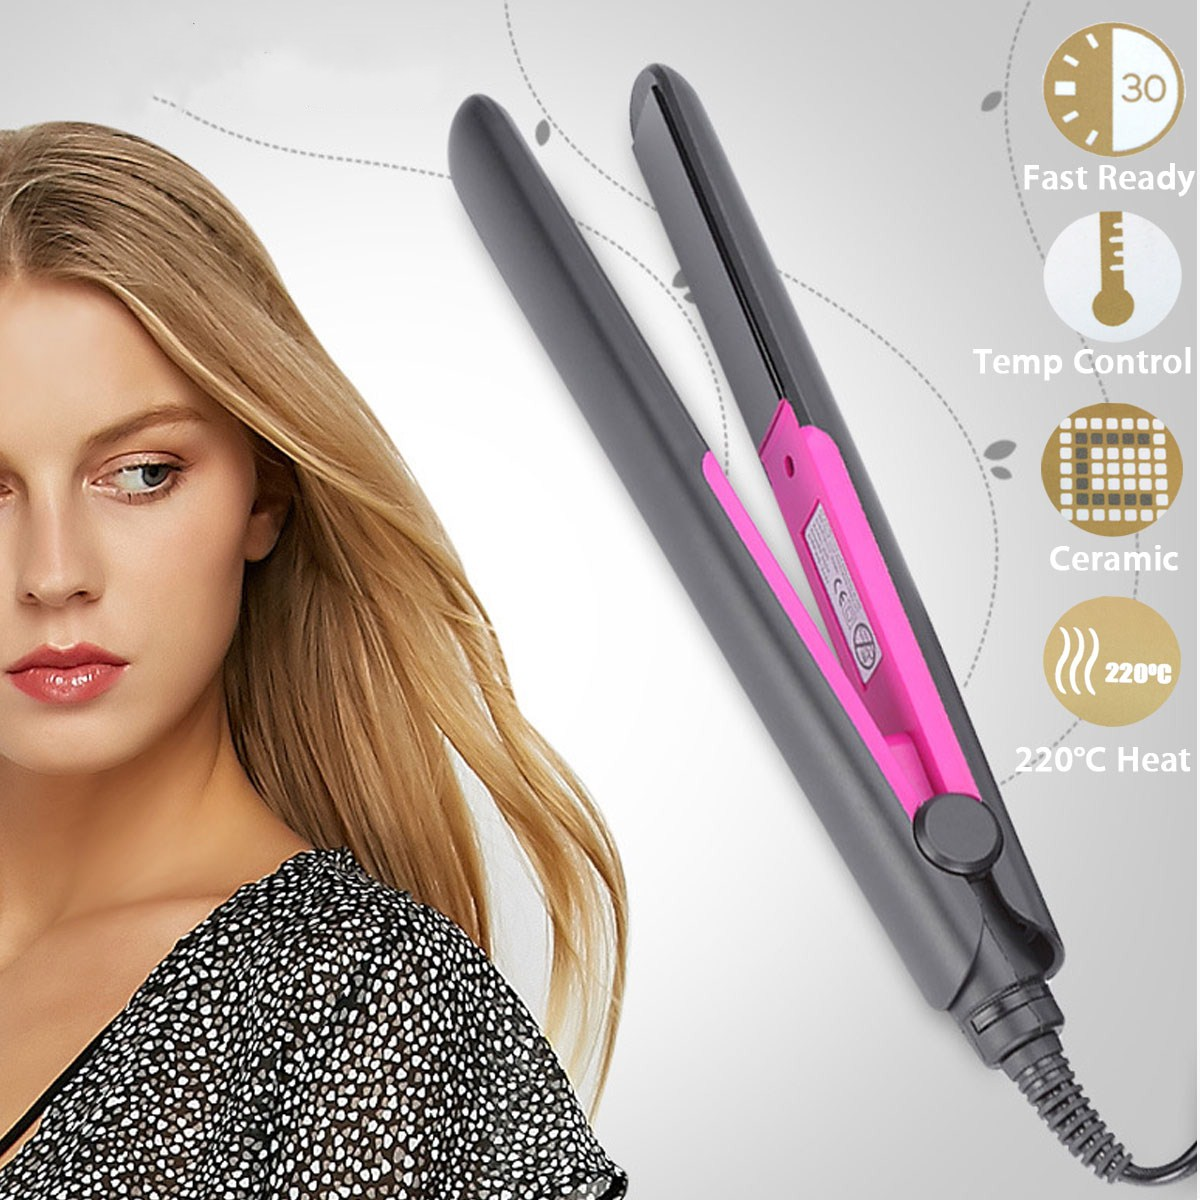 Fast Heating Flat Iron Straightening Irons Styling Tools Professional Ceramic Tourmaline Plate Perm Hair Straightener professional hair straightener lcd display titanium ceramic plates flat iron straightening irons fast heating styling tools